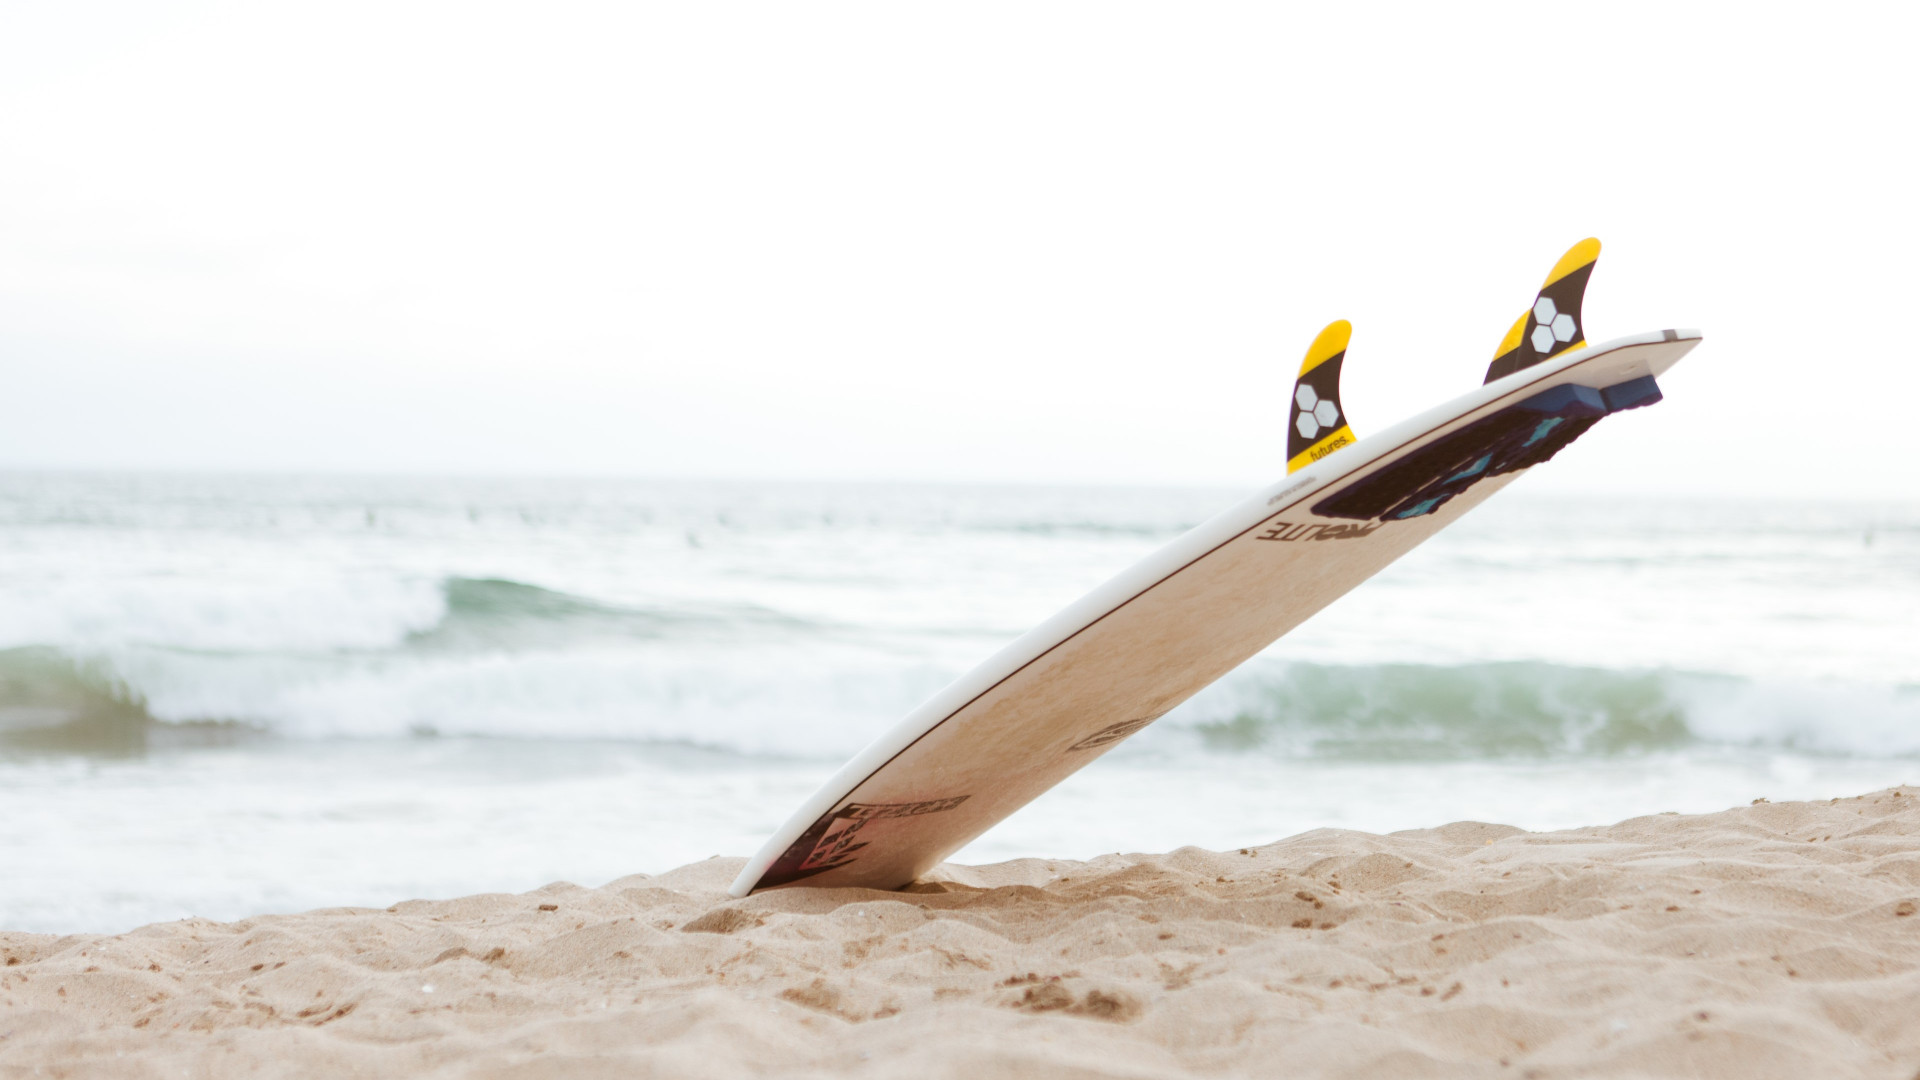 Surf board on the beach | 1920x1080 wallpaper